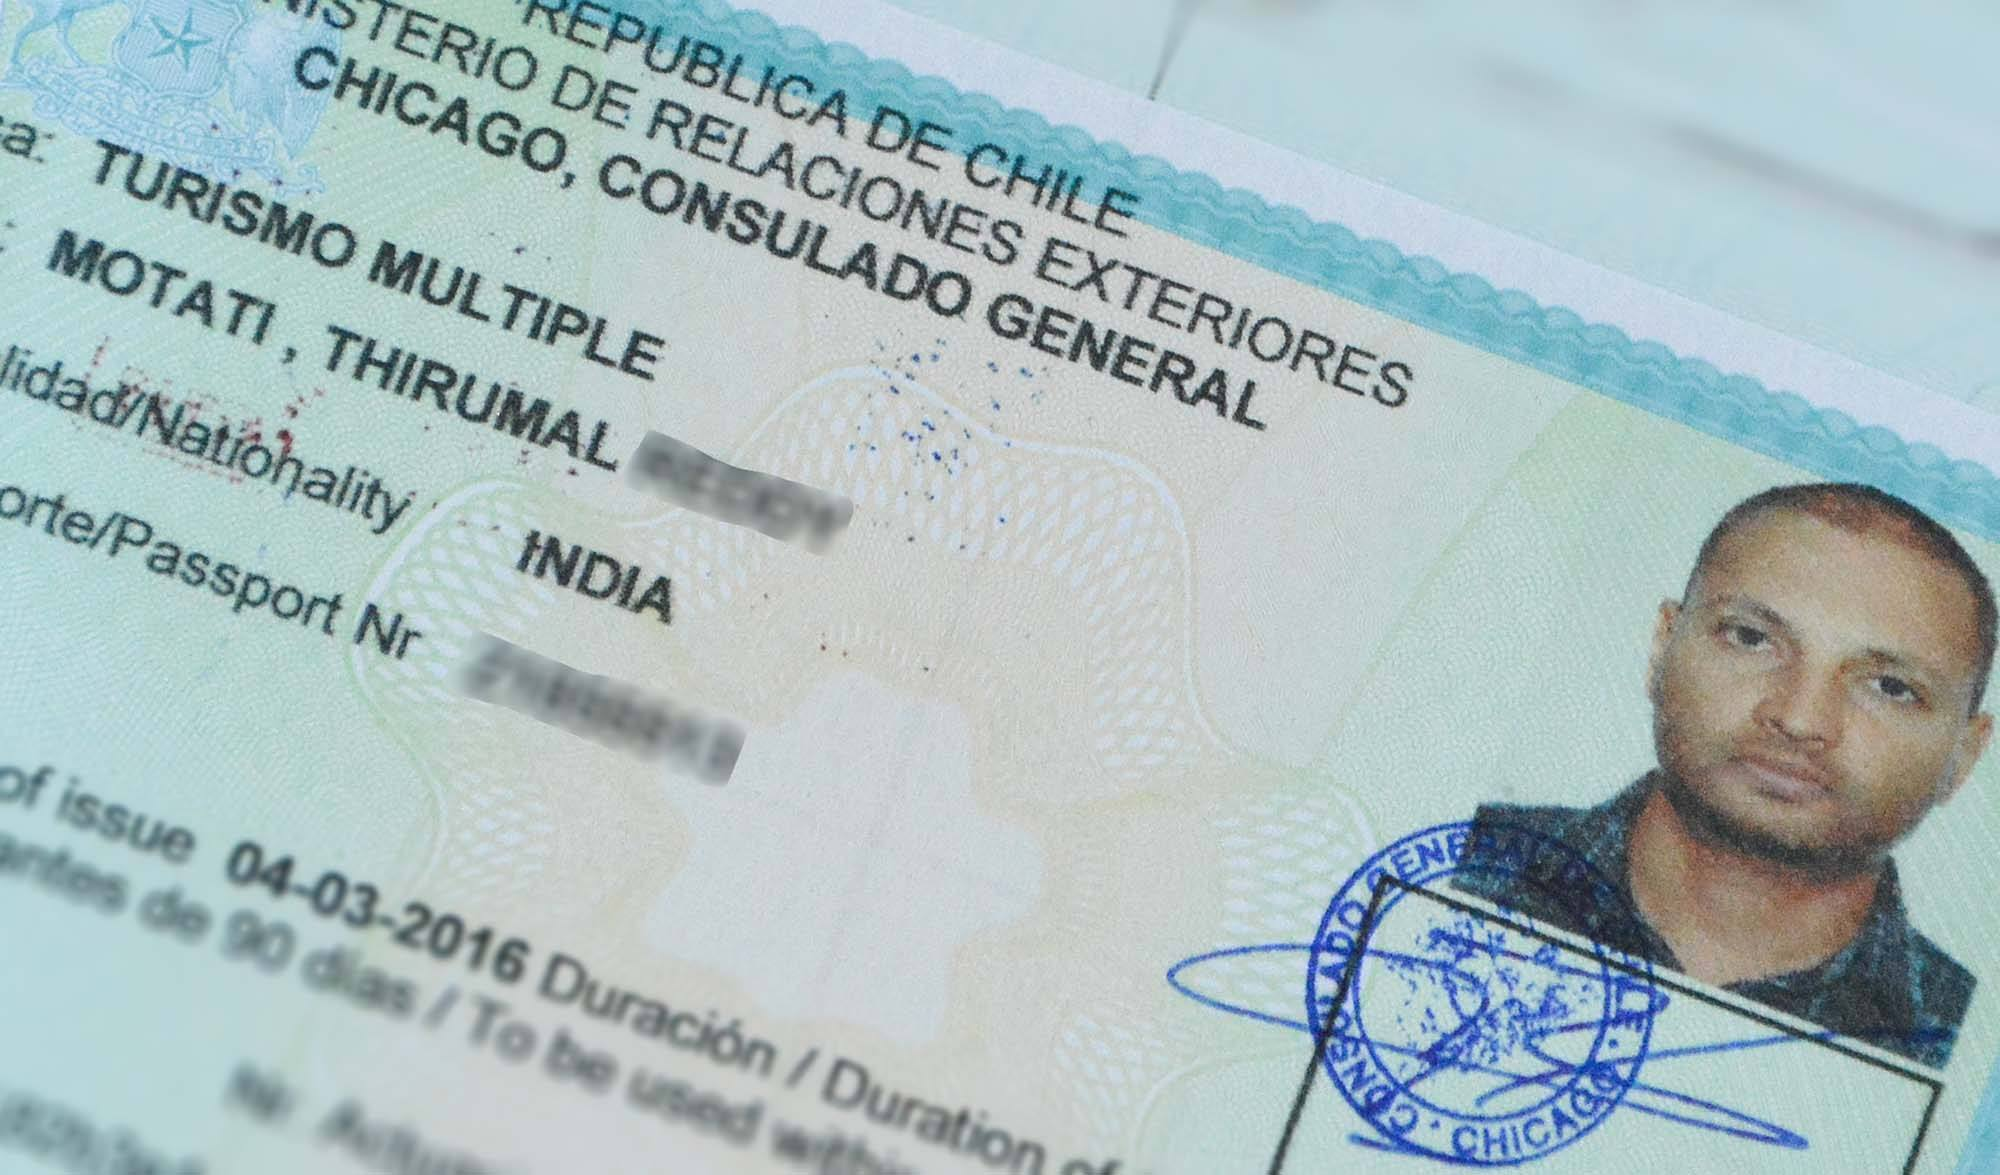 chile-tourist-visa-image